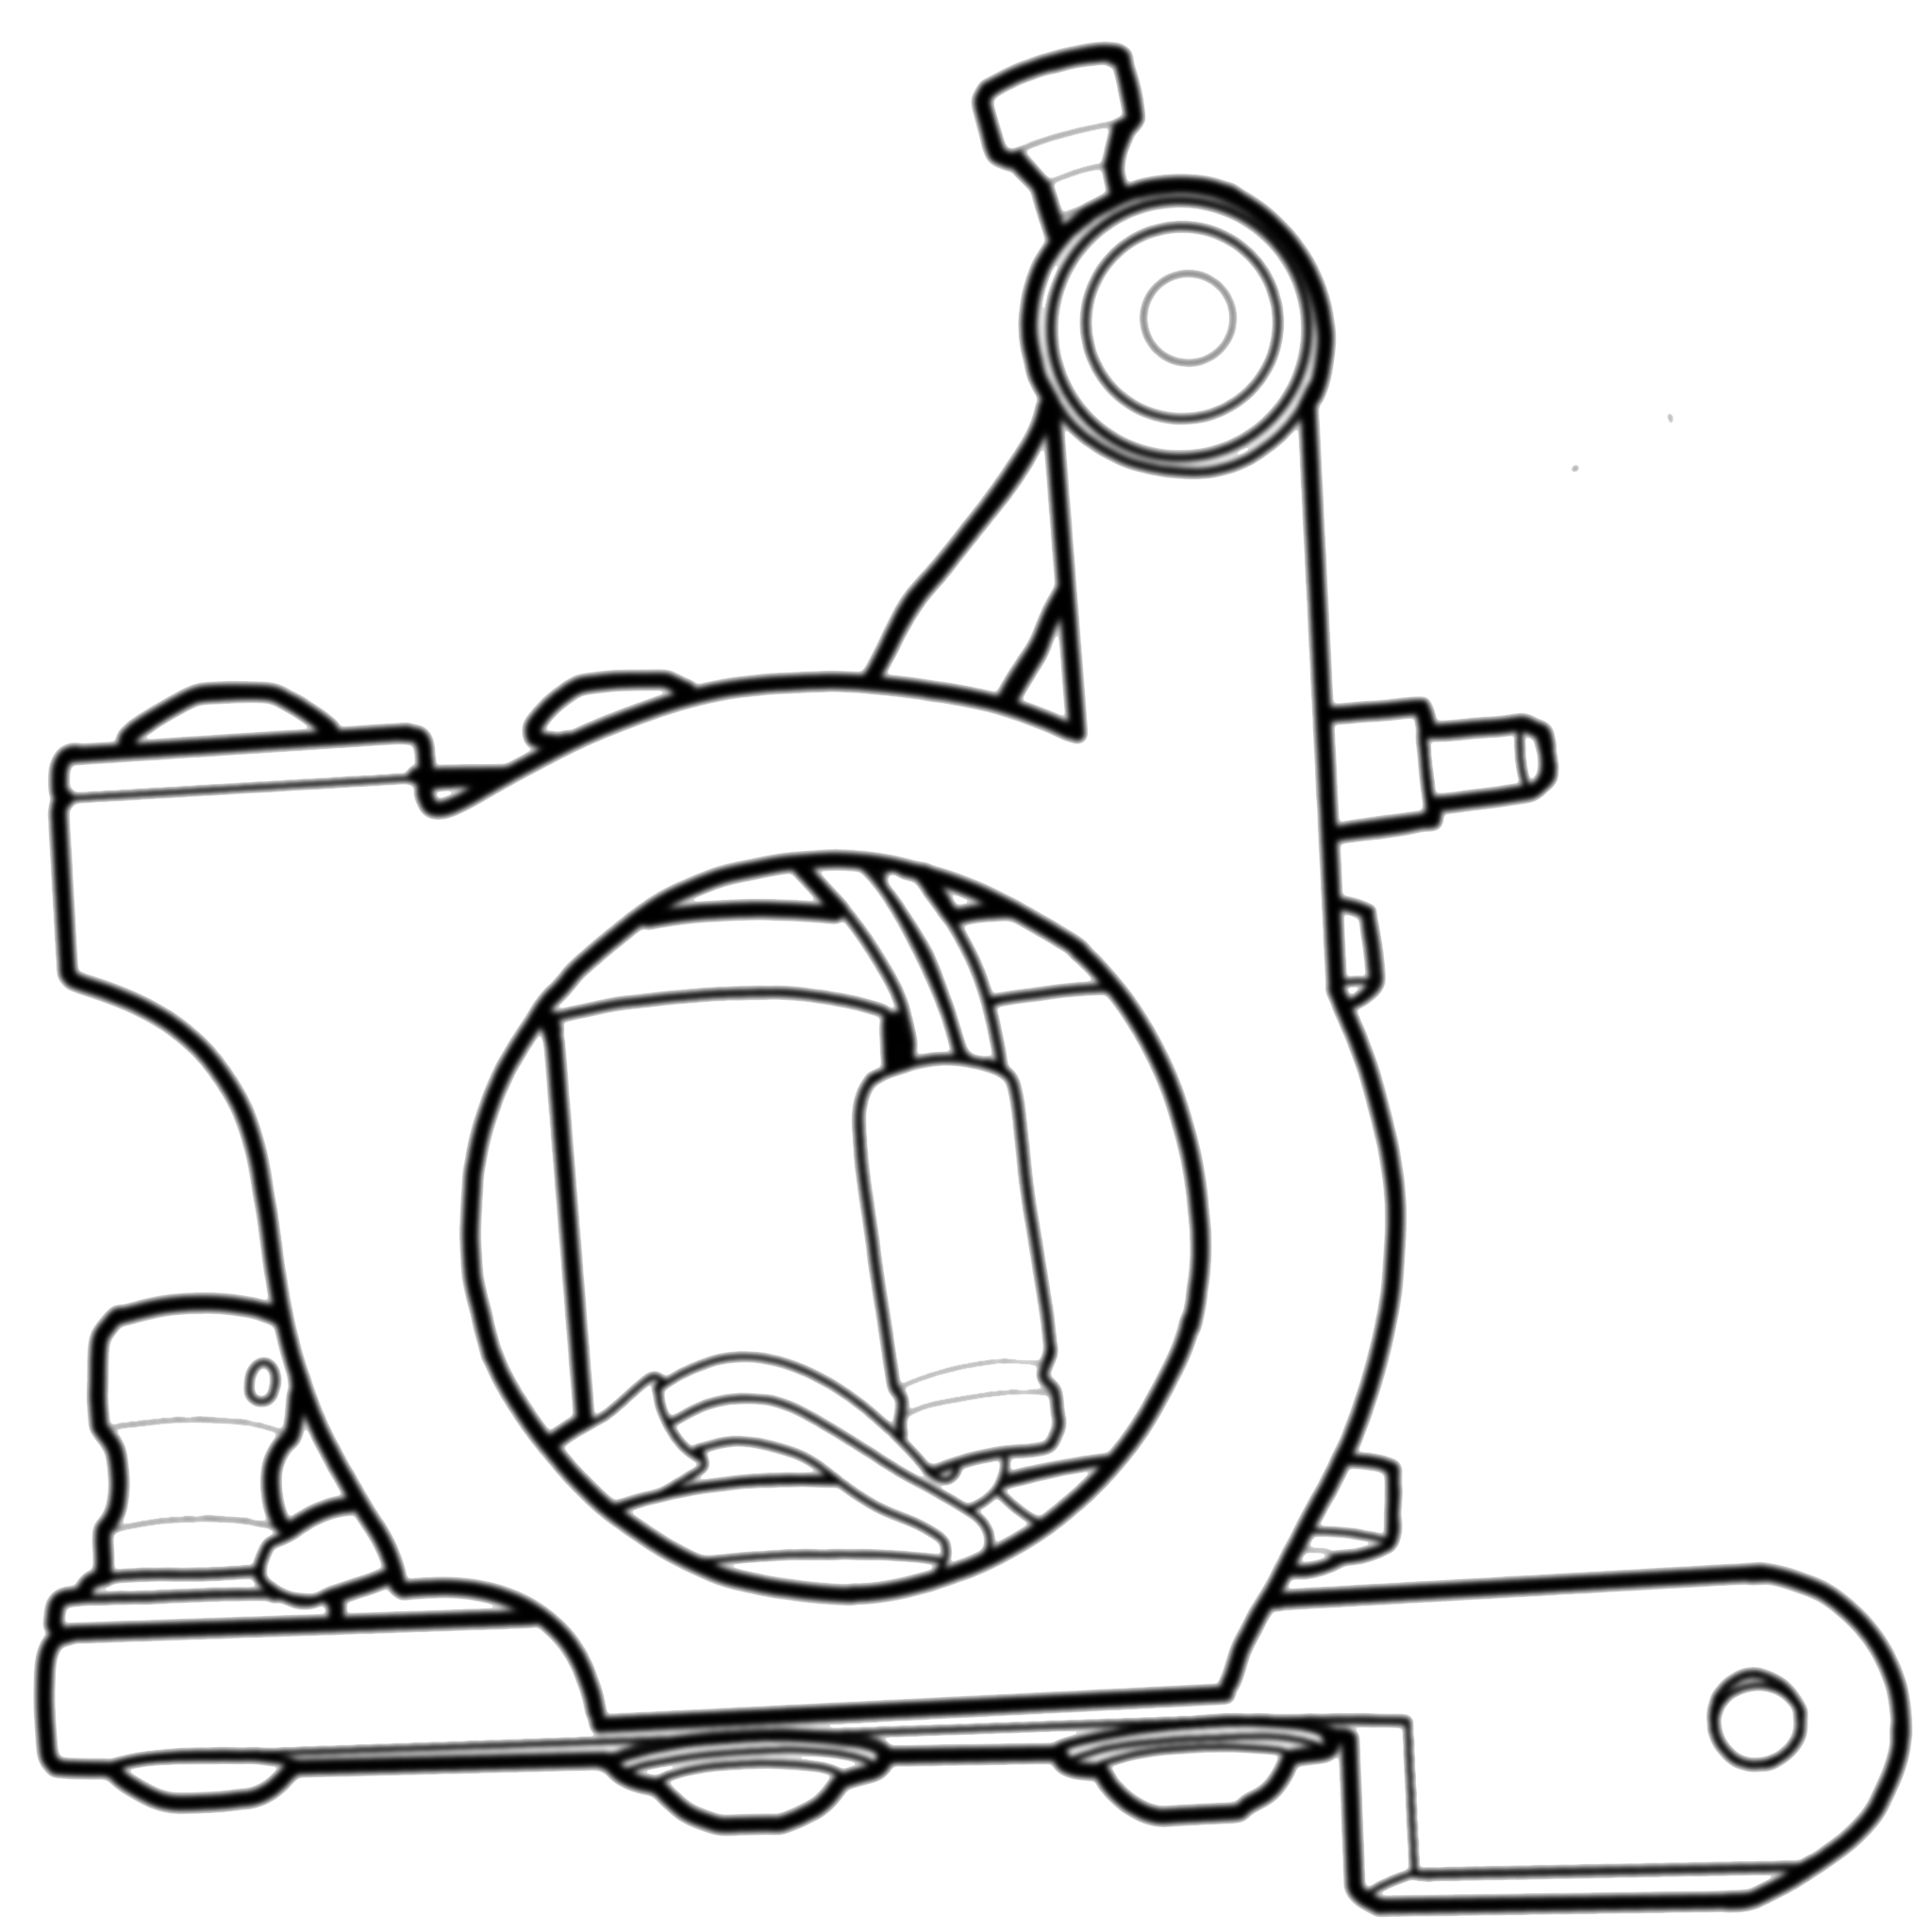 jpg free download Tattoo drawing at getdrawings. Gumball machine clipart outline